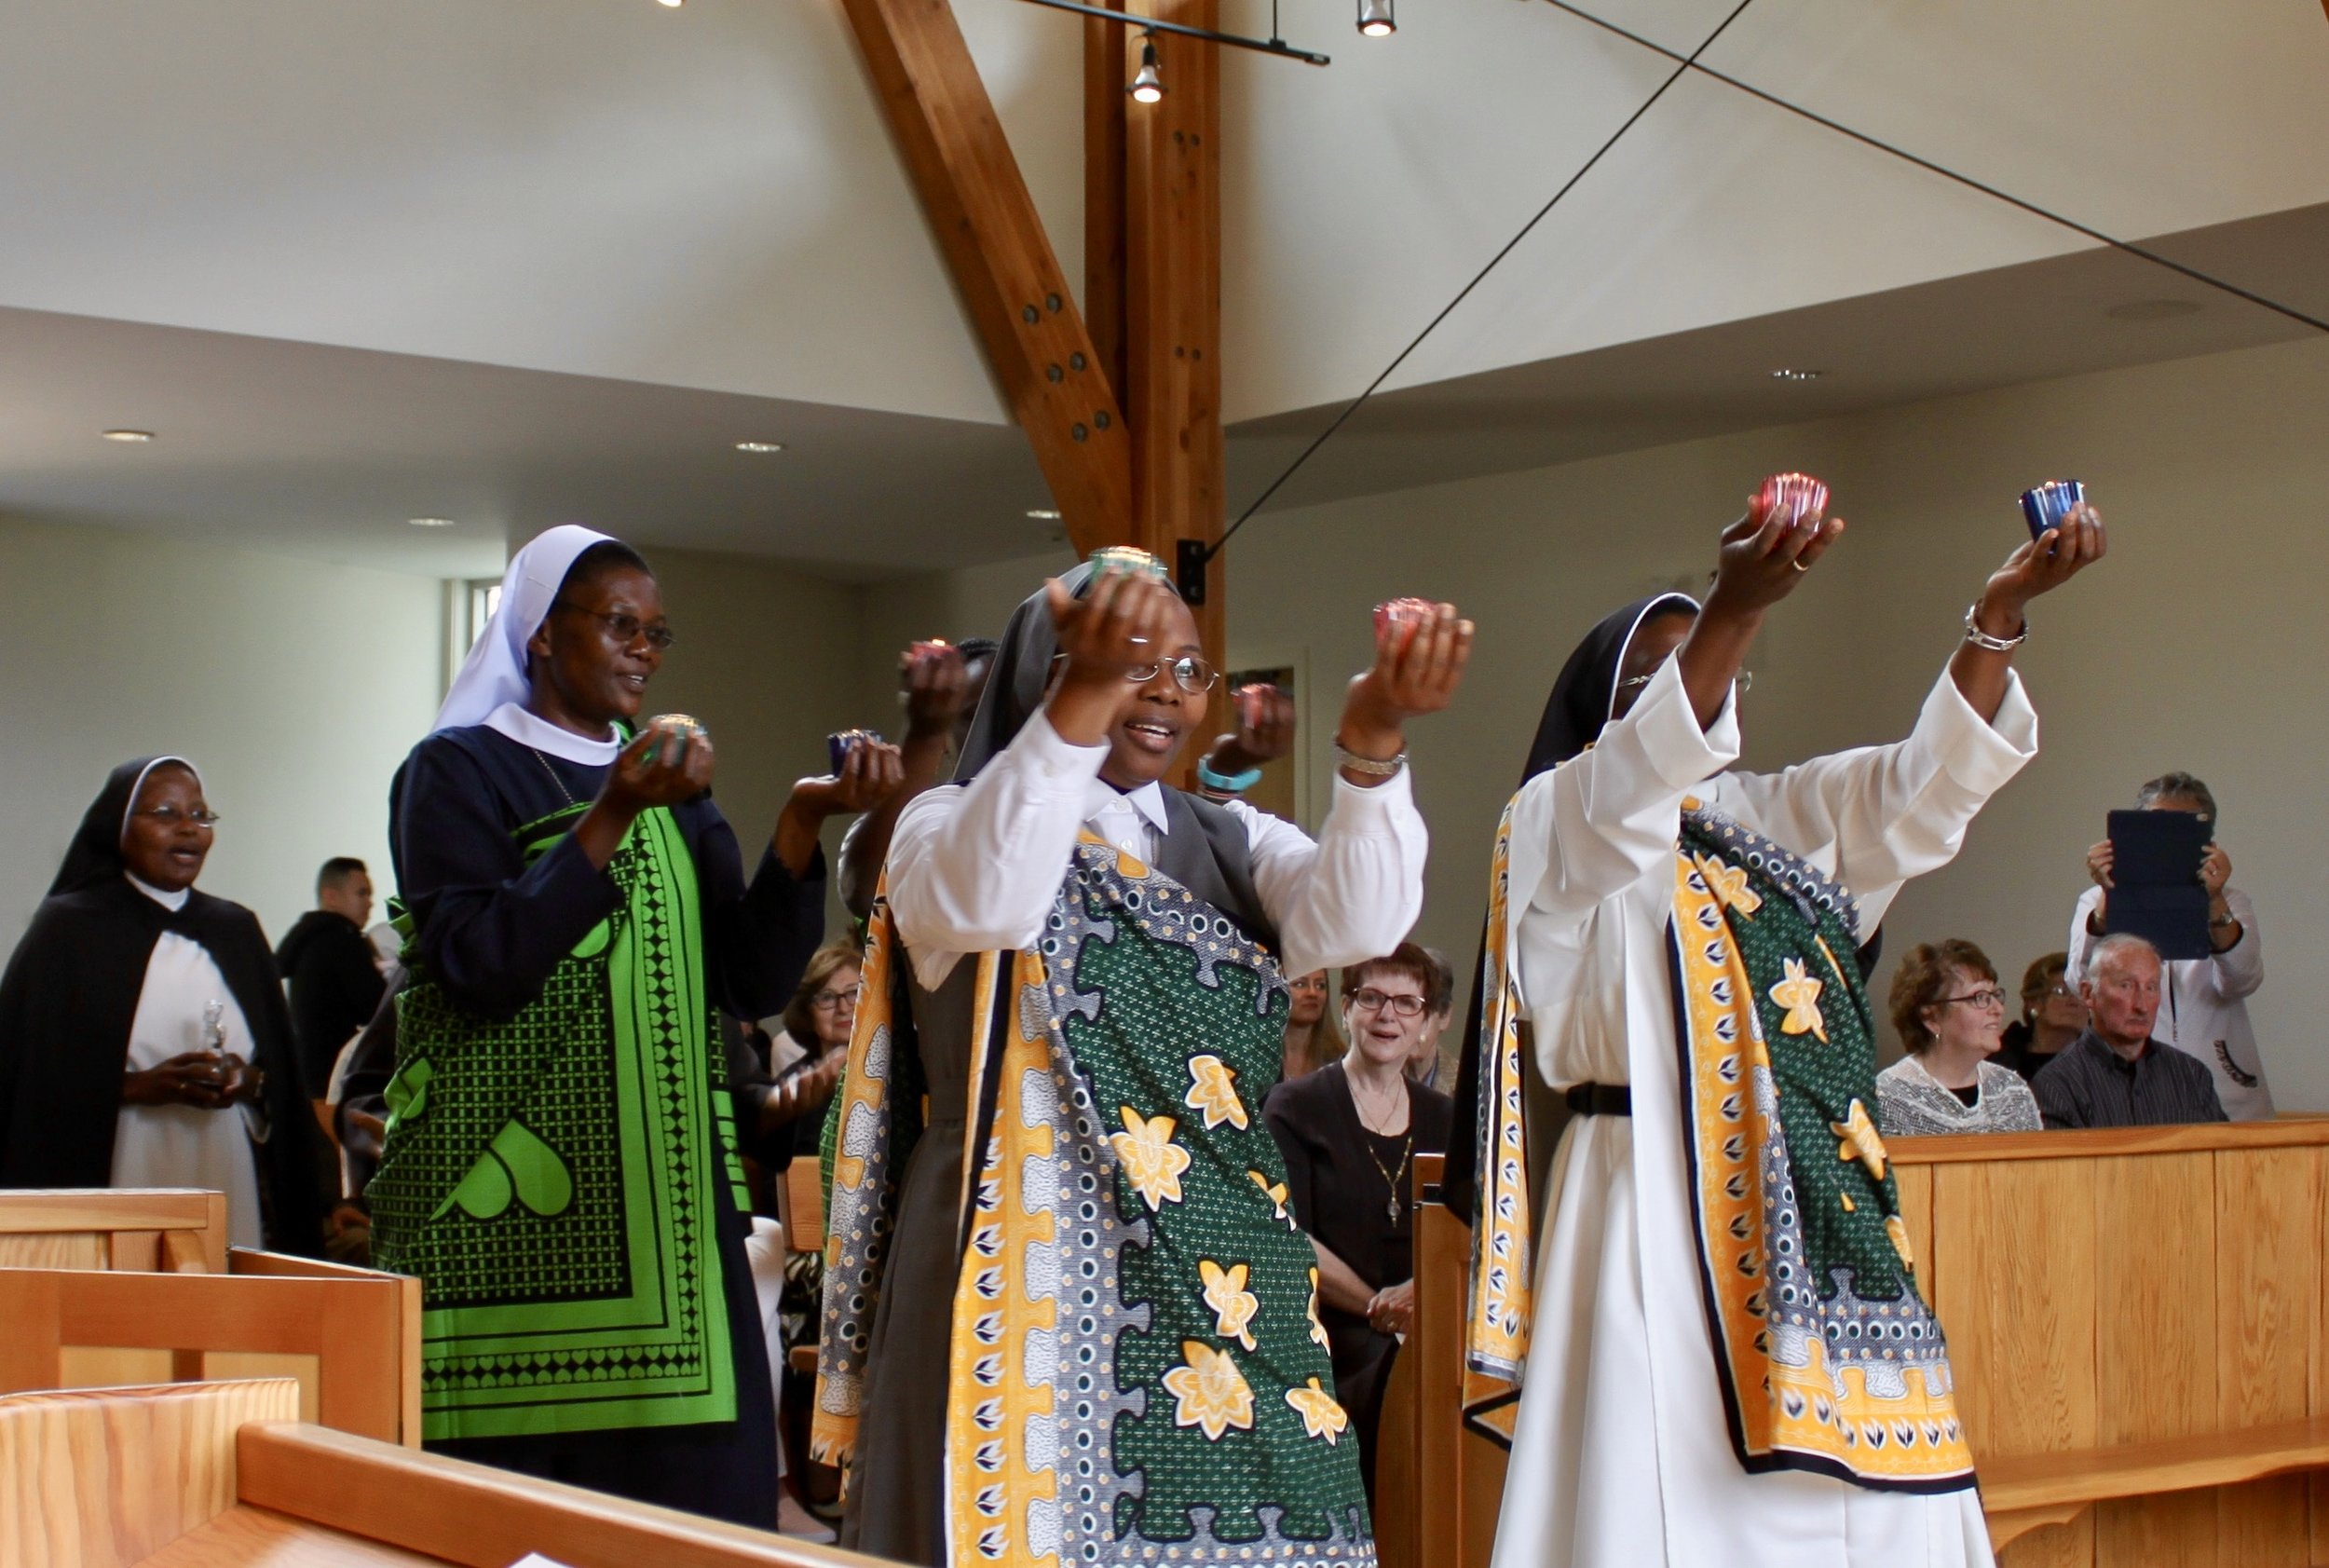 The offeratory procession was graced by Sister's friends and family members from Tanzania and Kenya.